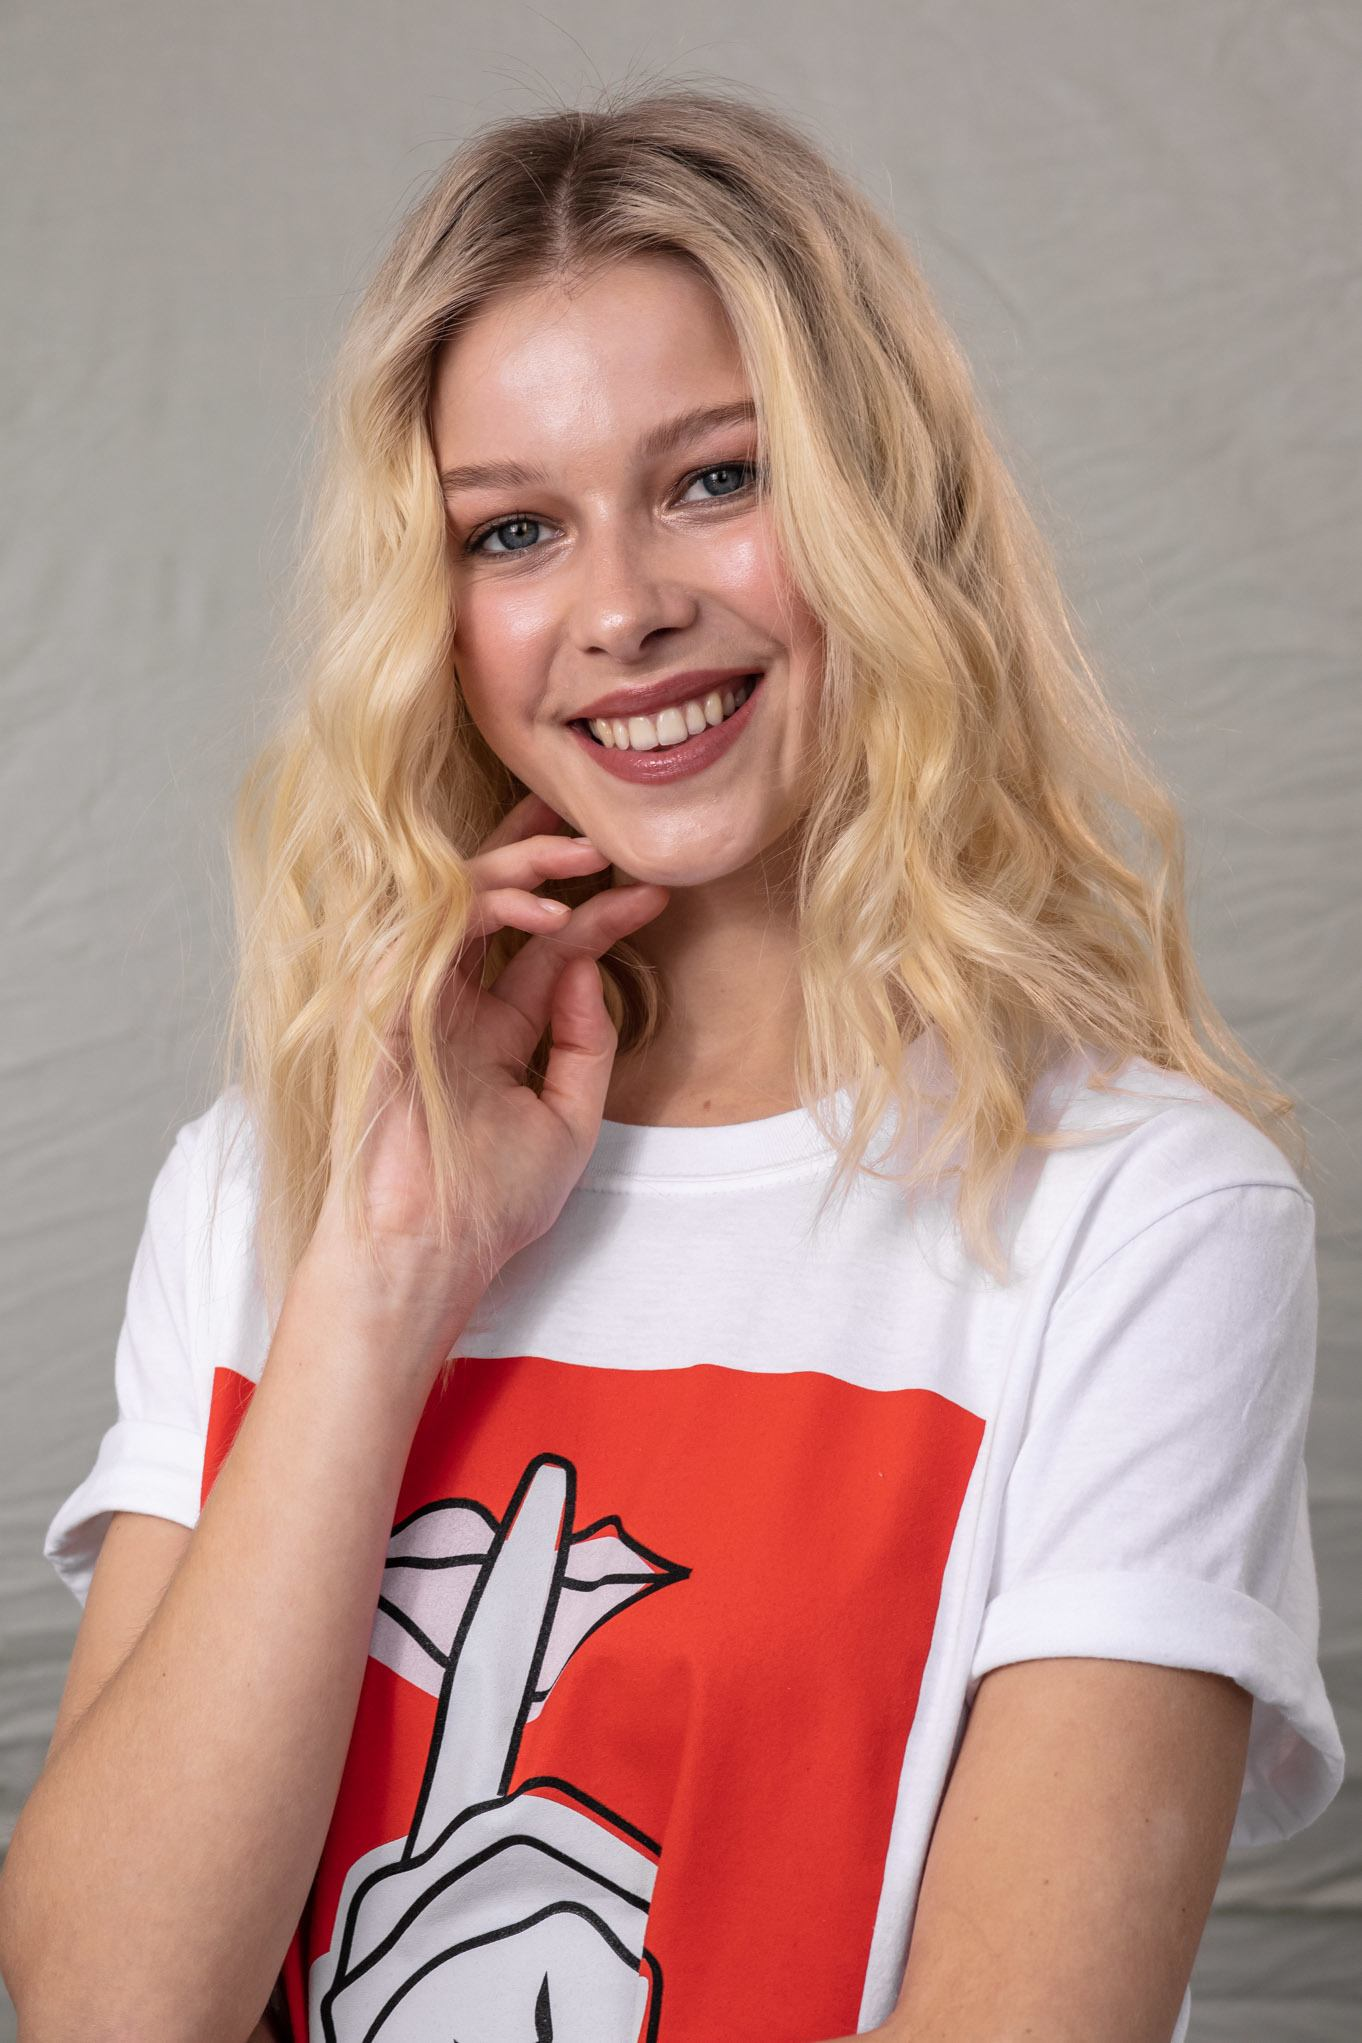 How to make hair look thicker: Blonde model with wavy shoulder-length hair, wearing a white t-shirt with red print